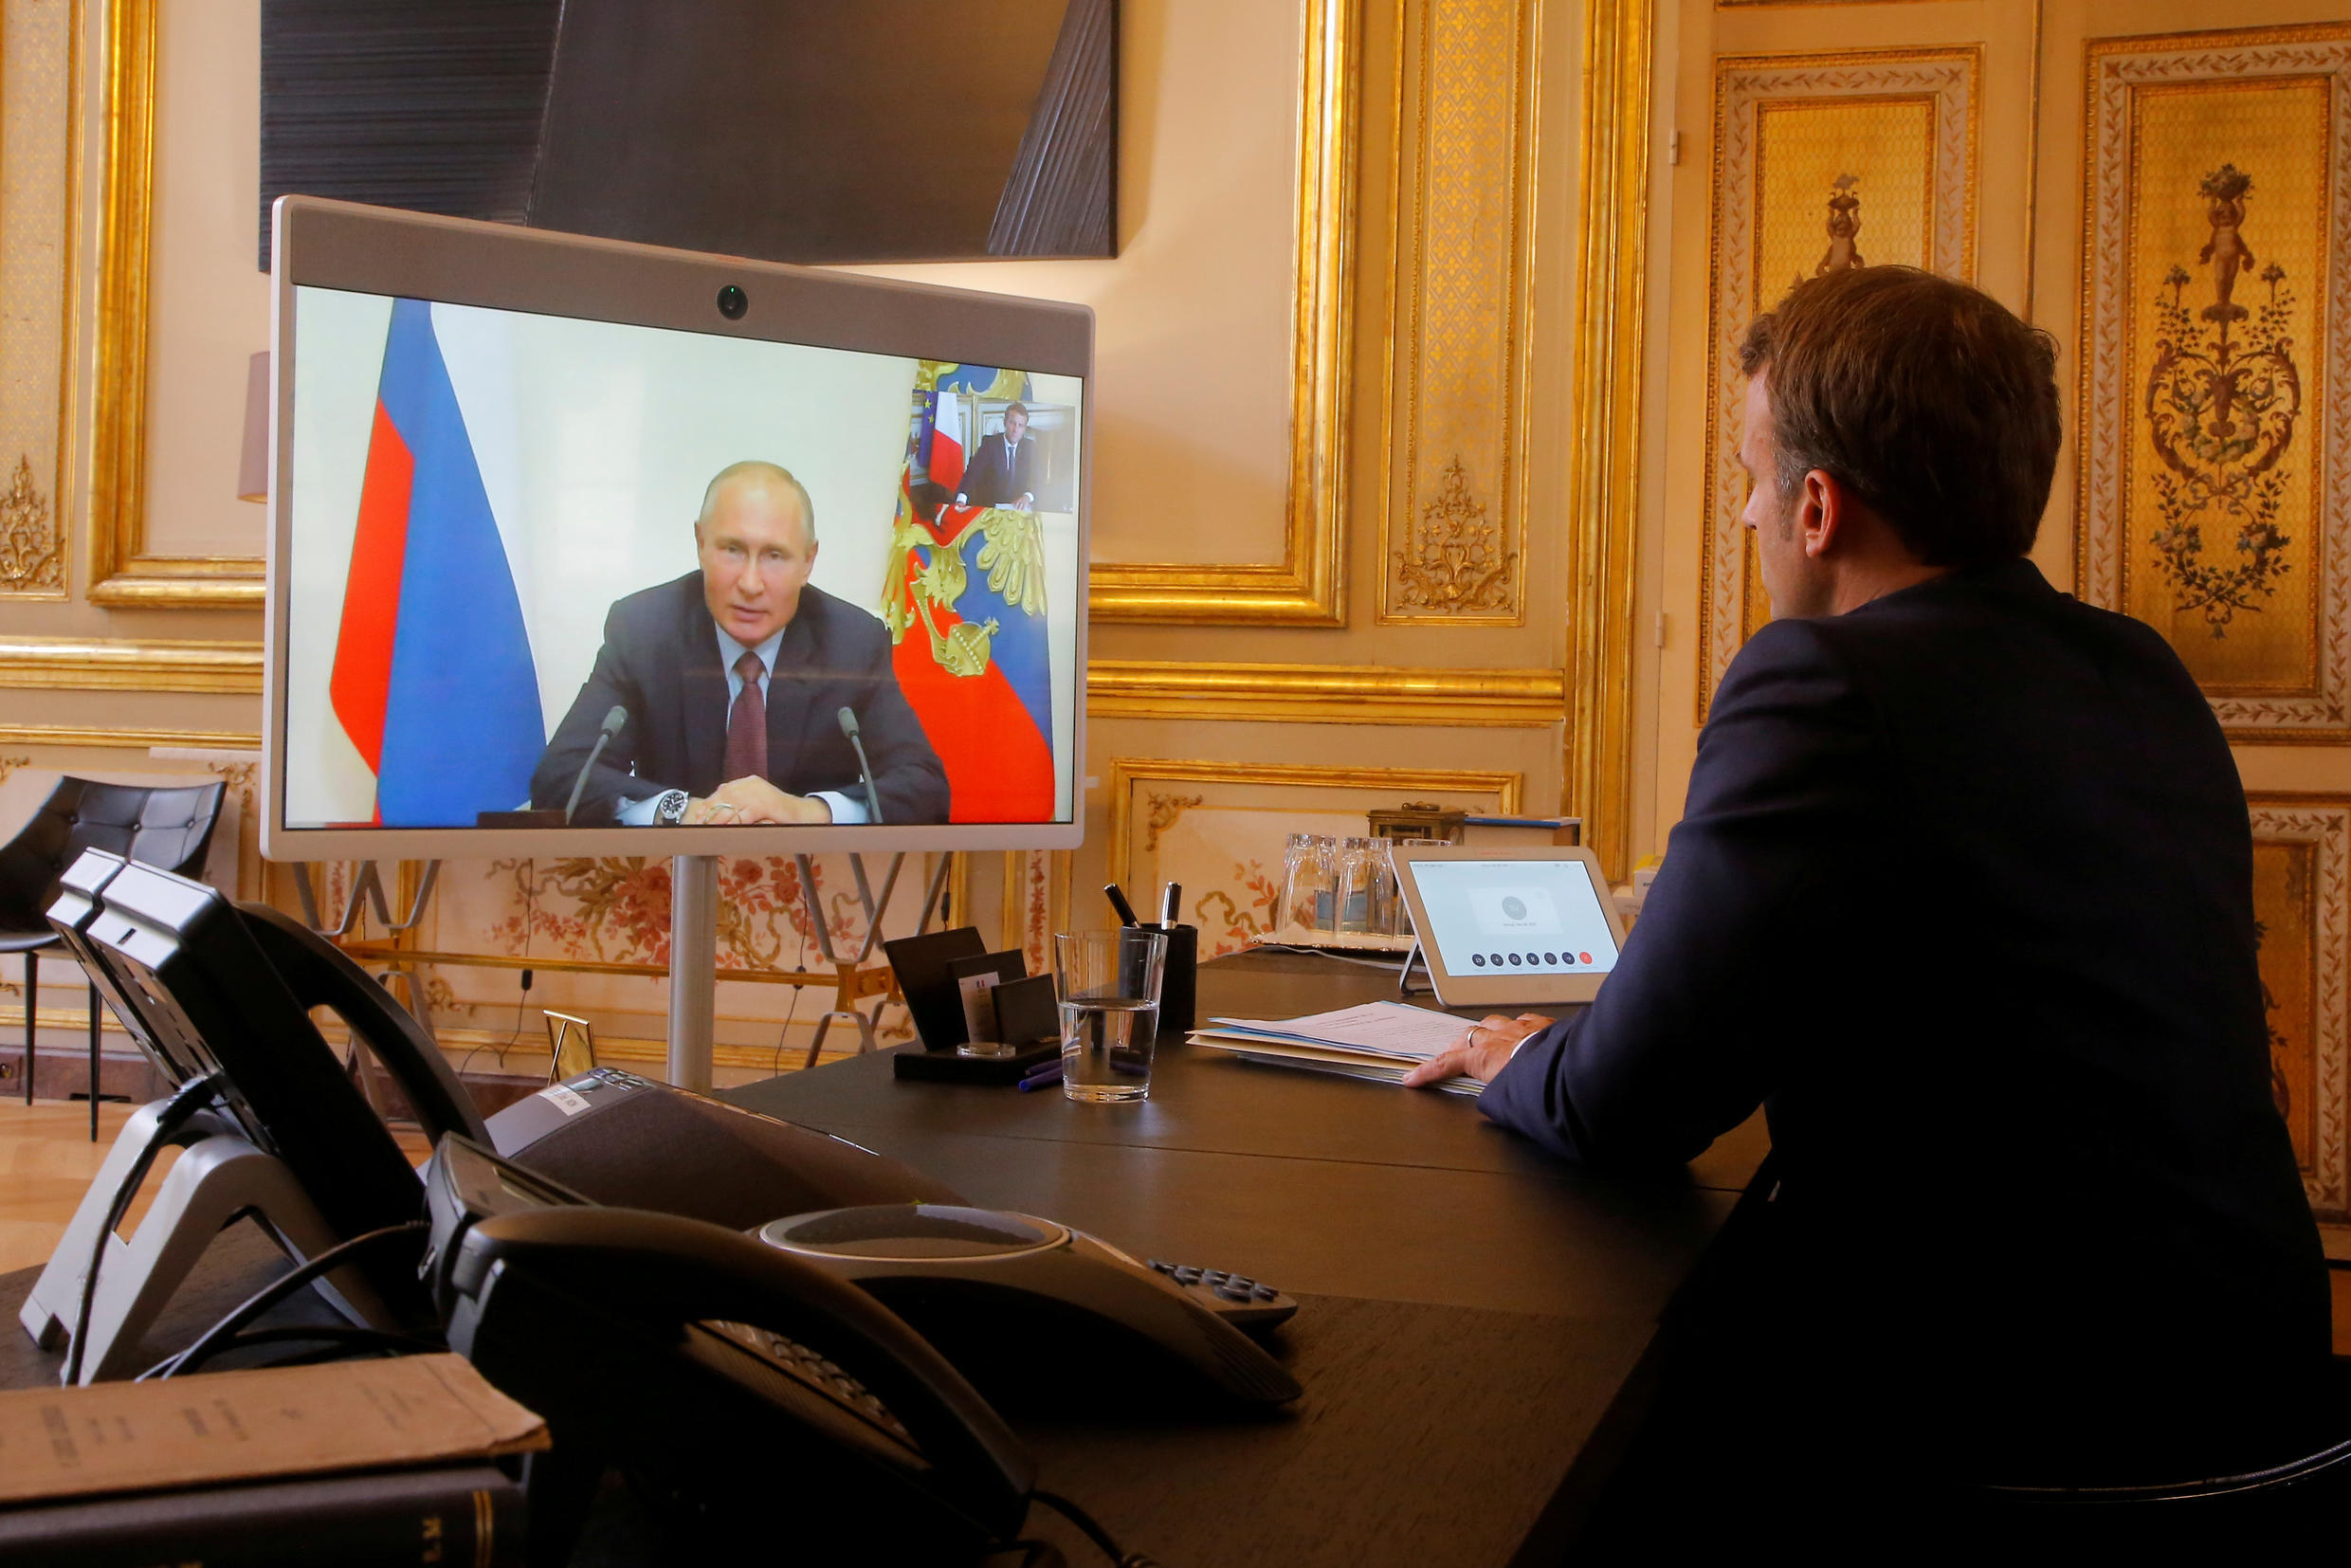 French President Emmanuel Macron listens to Russian President Vladimir Putin during a video conference at the Élysée Palace in Paris on June 26, 2020.